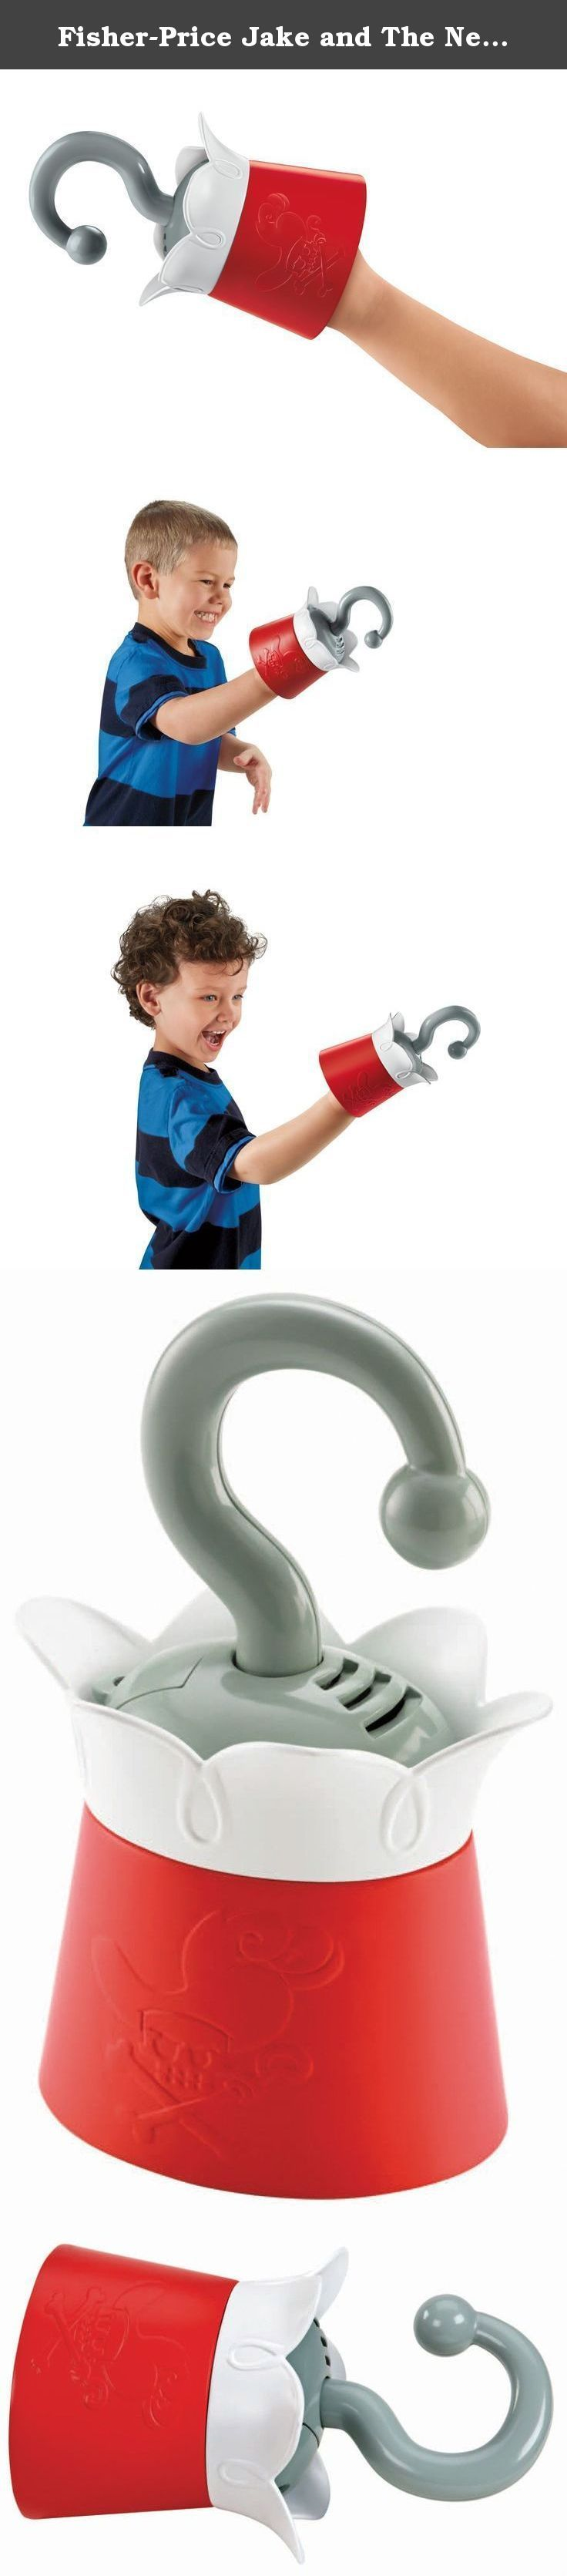 Fisher-Price Jake and The Never Land Pirates - Talking Hook. Now you can pretend to play the part of Captain Hook with Hook's Talking Hook! Slide the plastic hook onto your hand and hold onto the built in handle inside the cuff. Push down on the hook to activate silly Hook phrases. As you hook something and the hook gets pulled outward from the base, this also activates the Hook phrases.